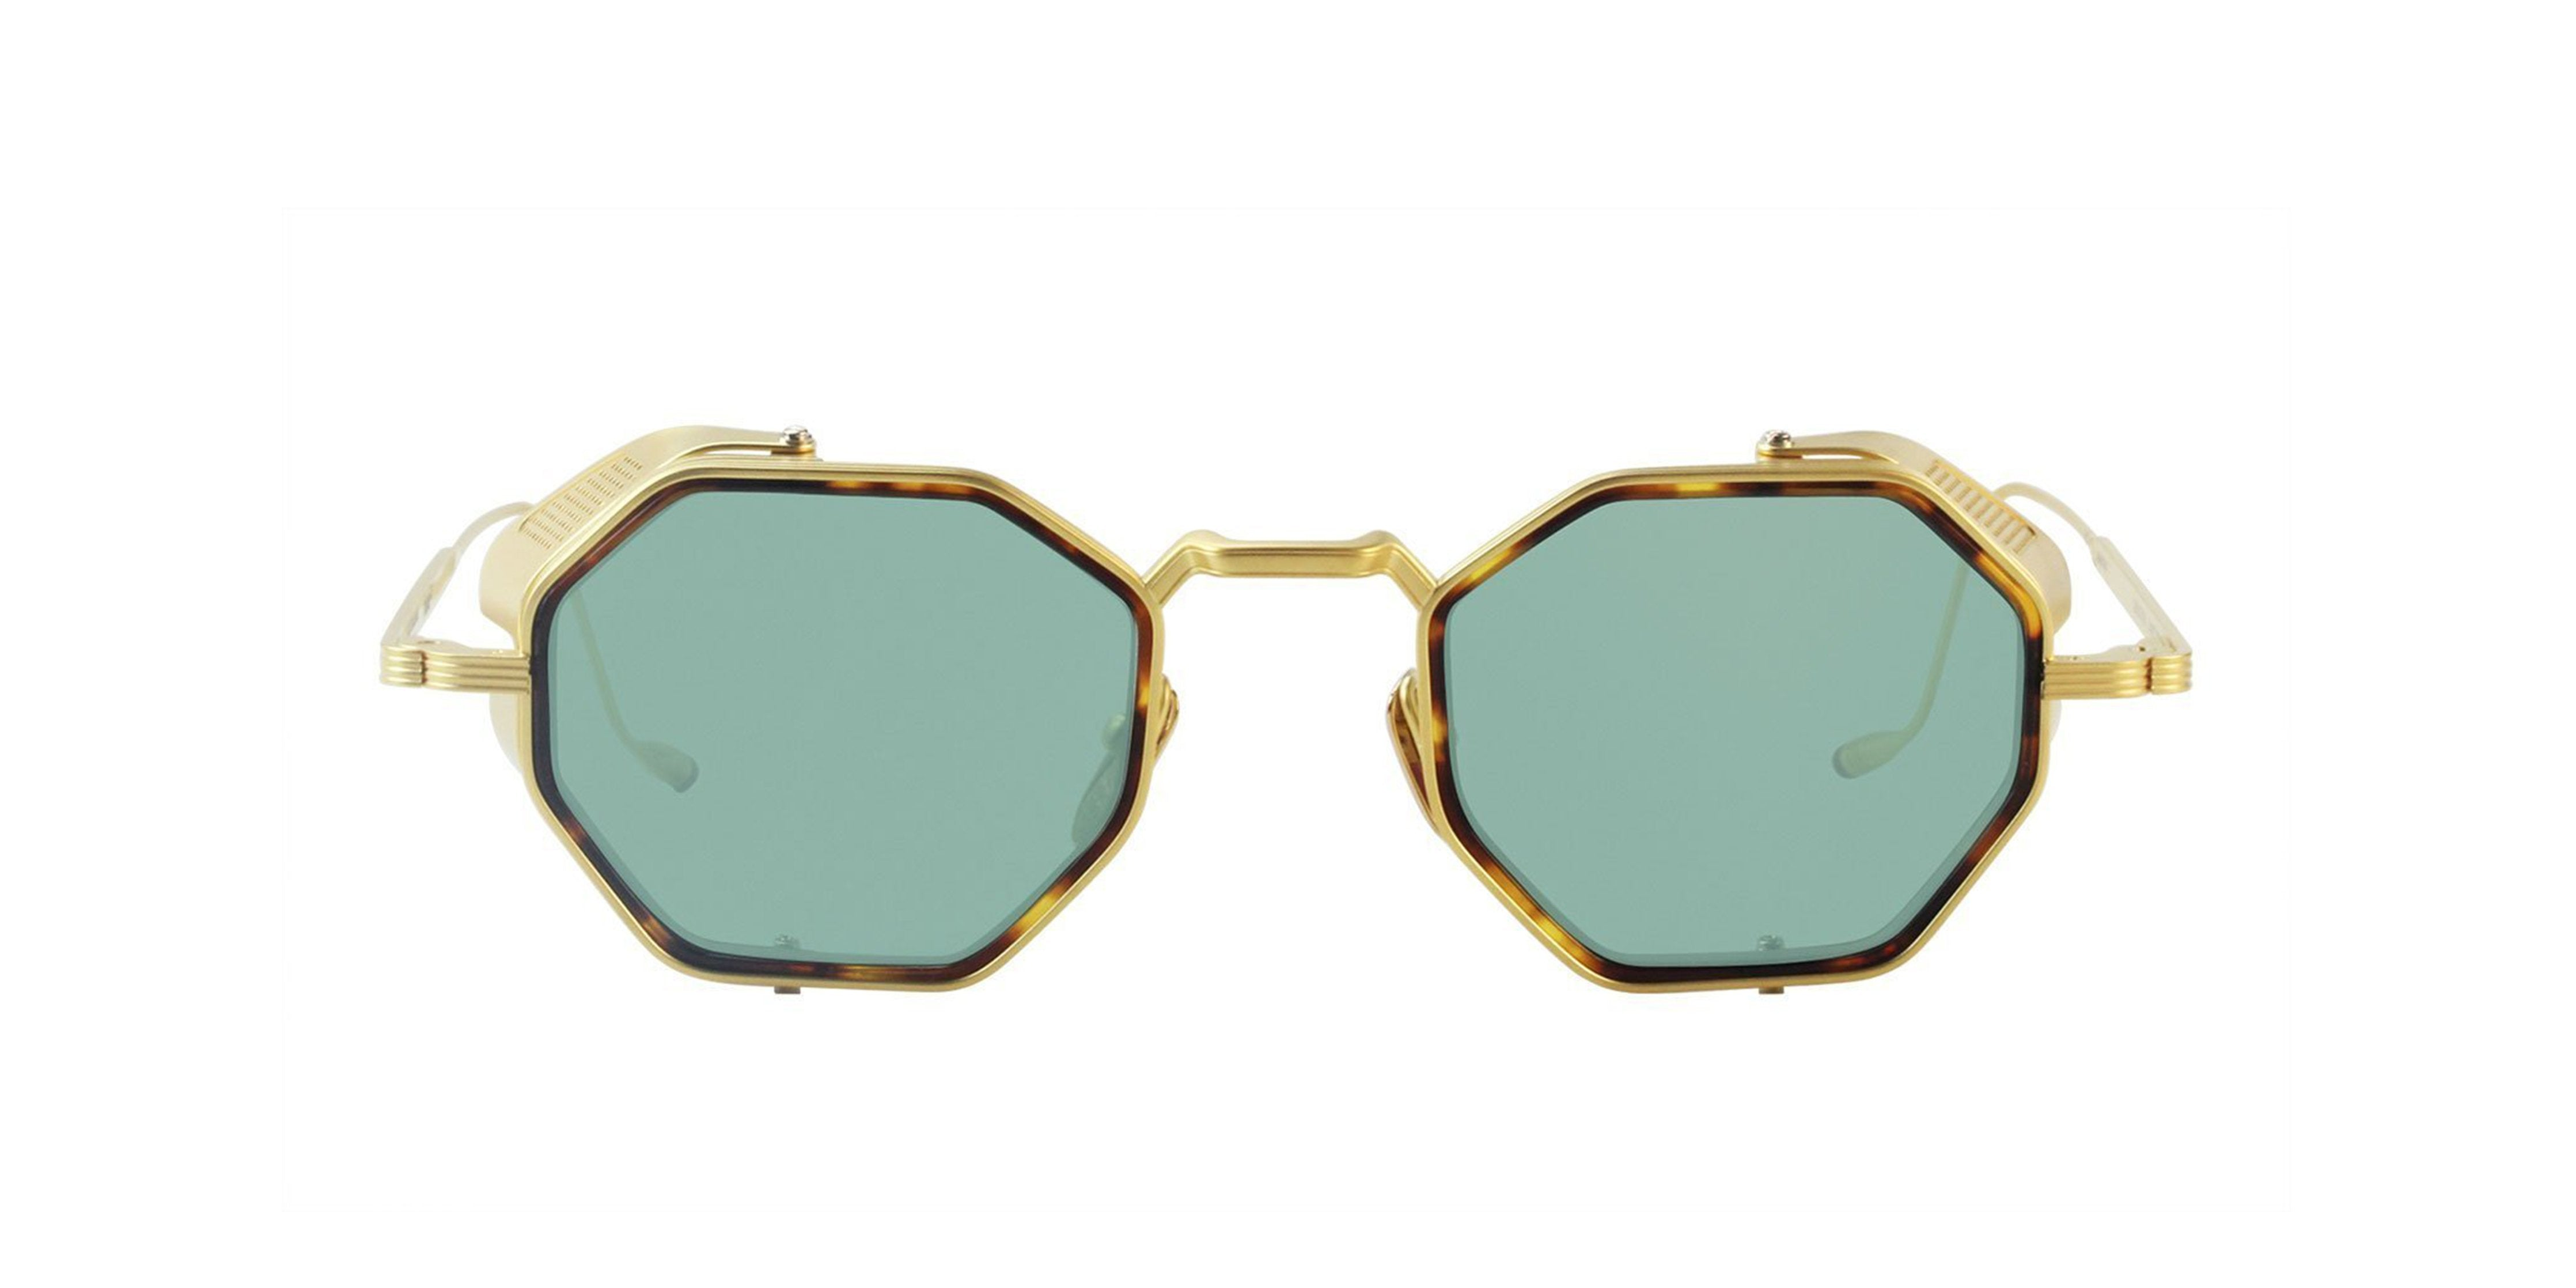 Jacques Marie Mage - Quatro Gold/Green Oval Unisex Sunglasses - 46mm-Sunglasses-Designer Eyes